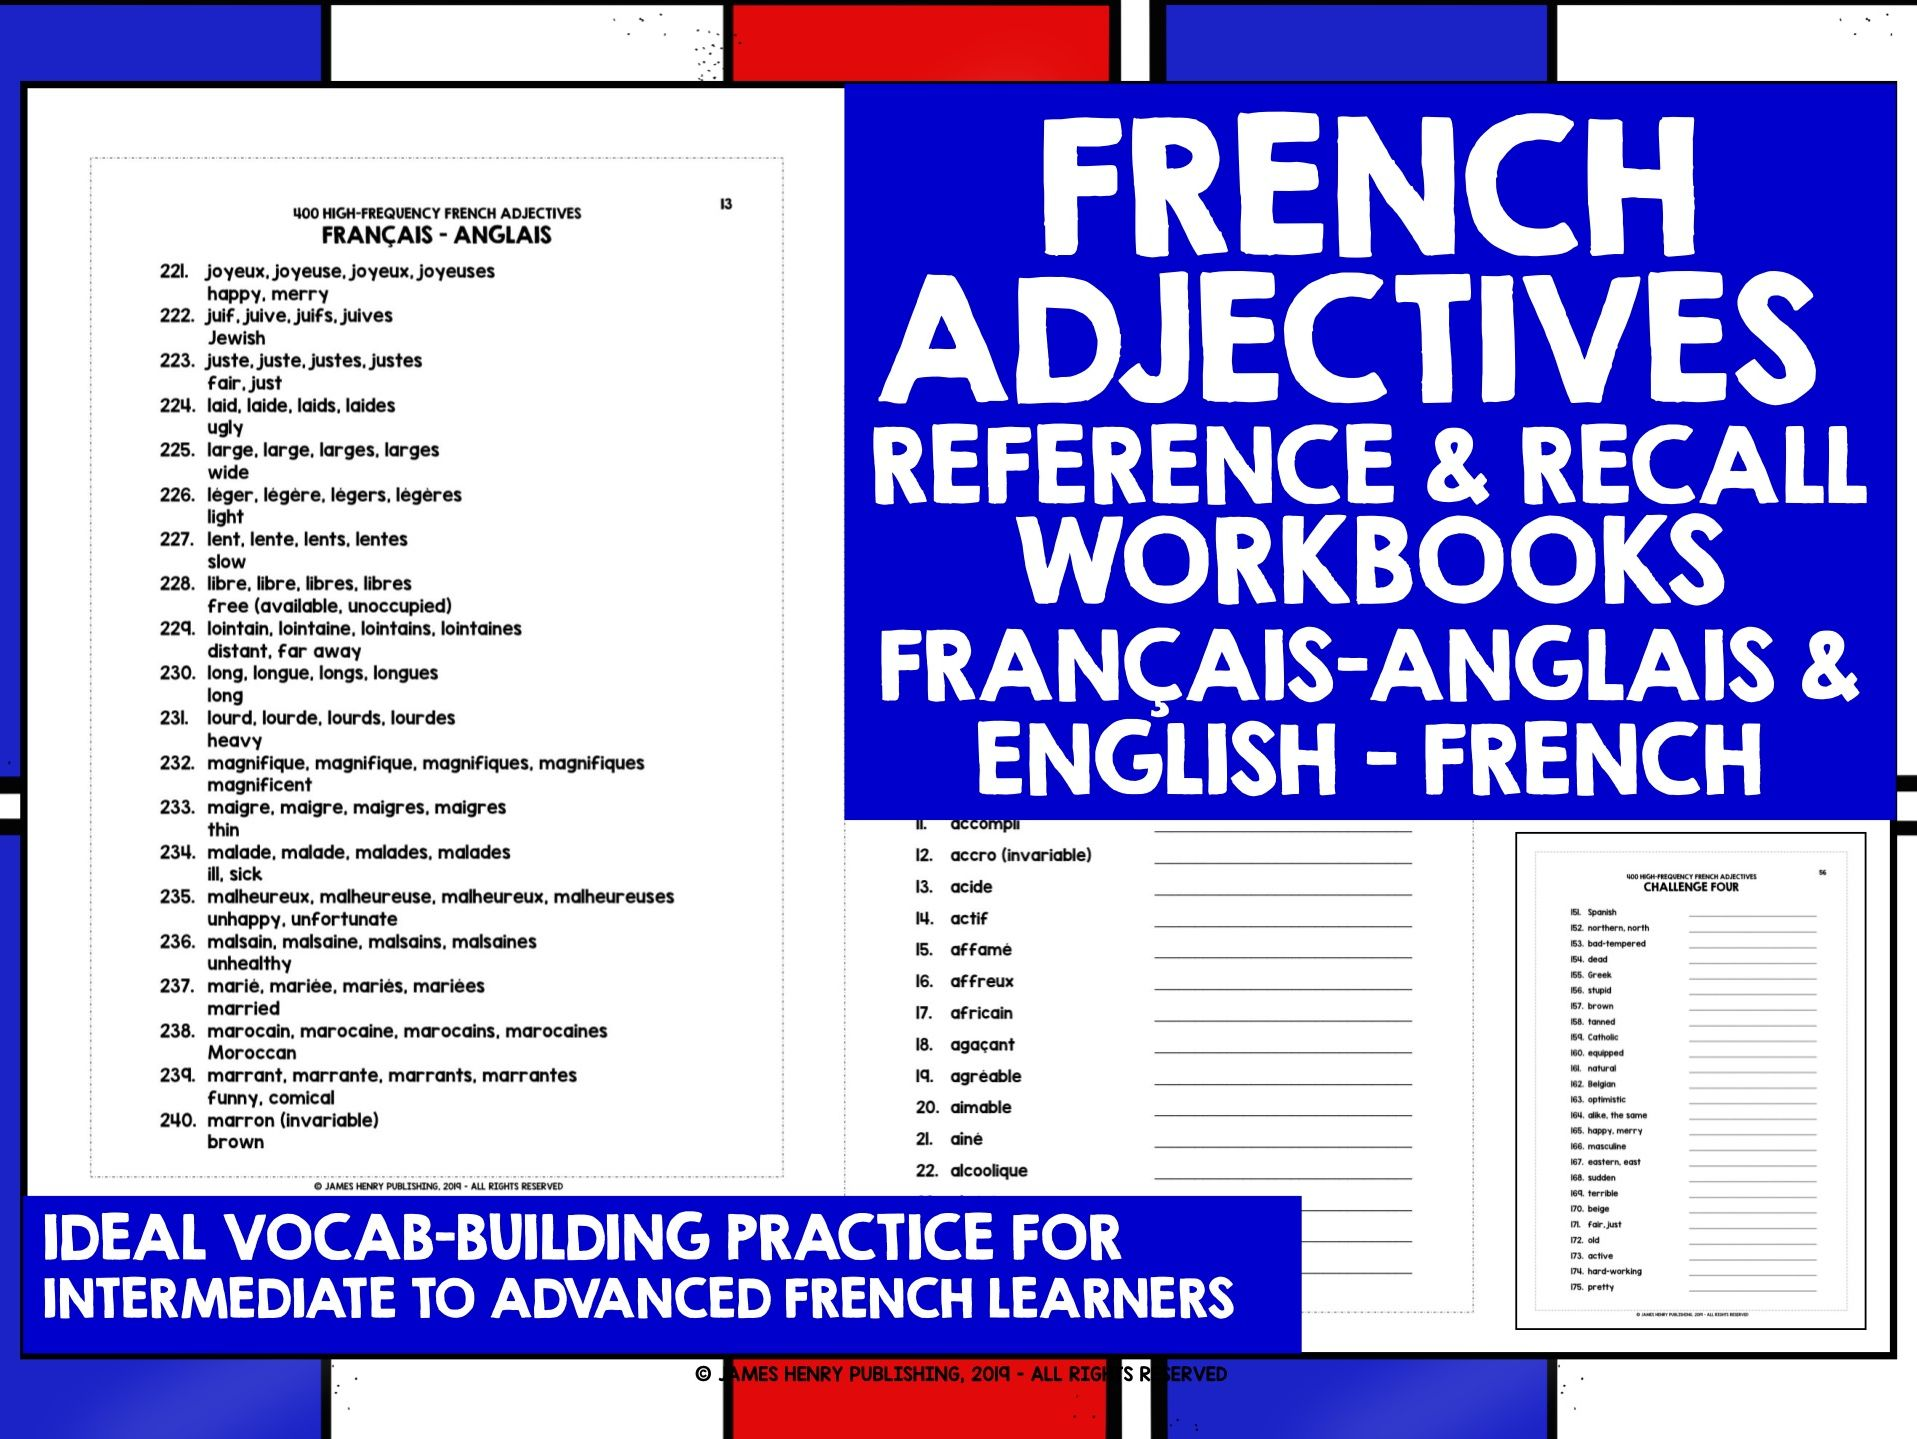 FRENCH ADJECTIVES REFERENCE & RECALL #1